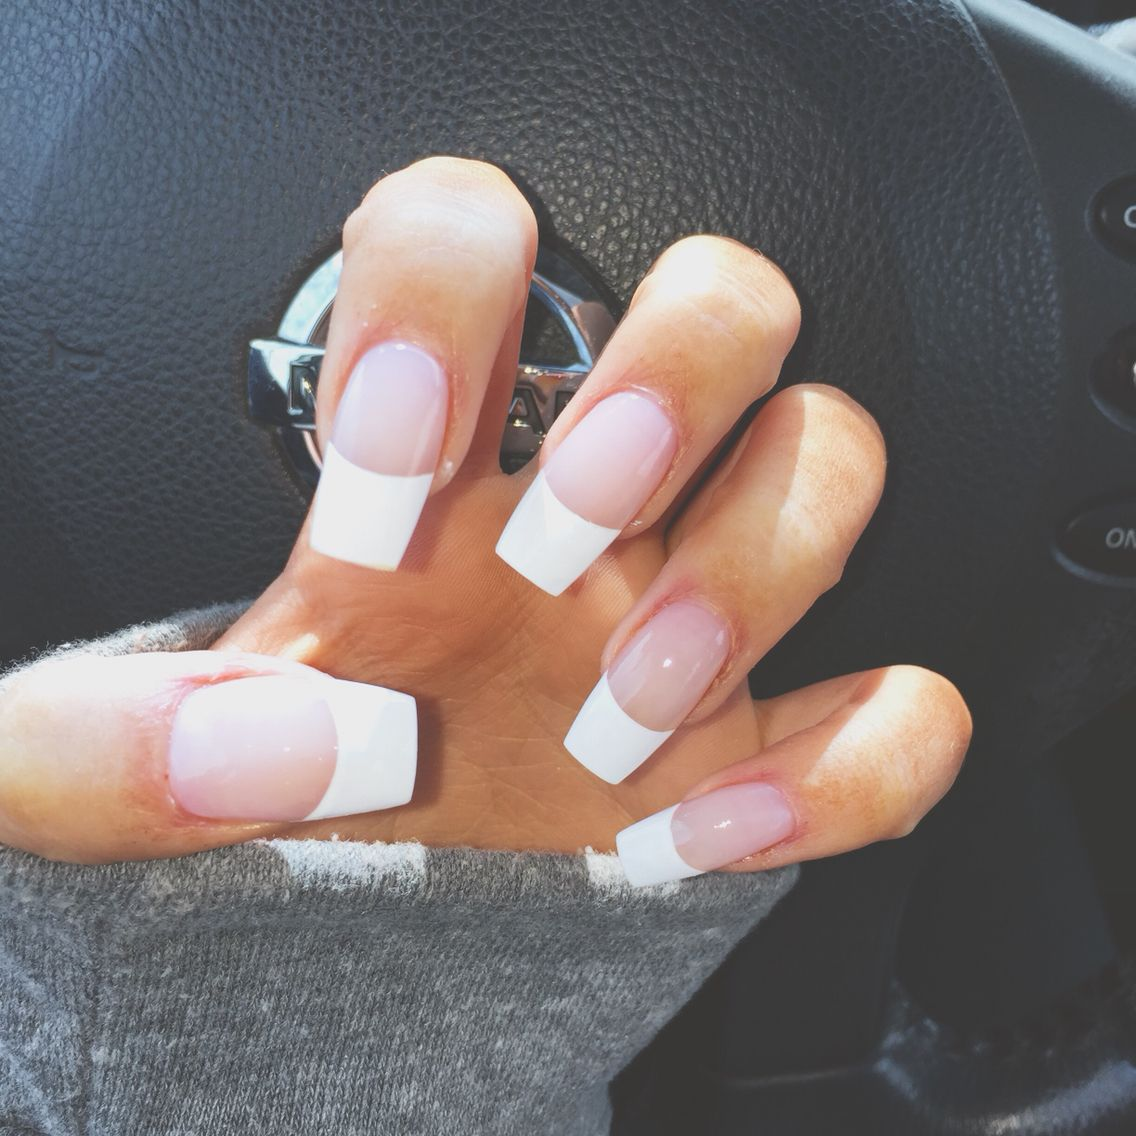 French Coffin Nails French Tip Acrylic Nails French Manicure Nails Prom Nails